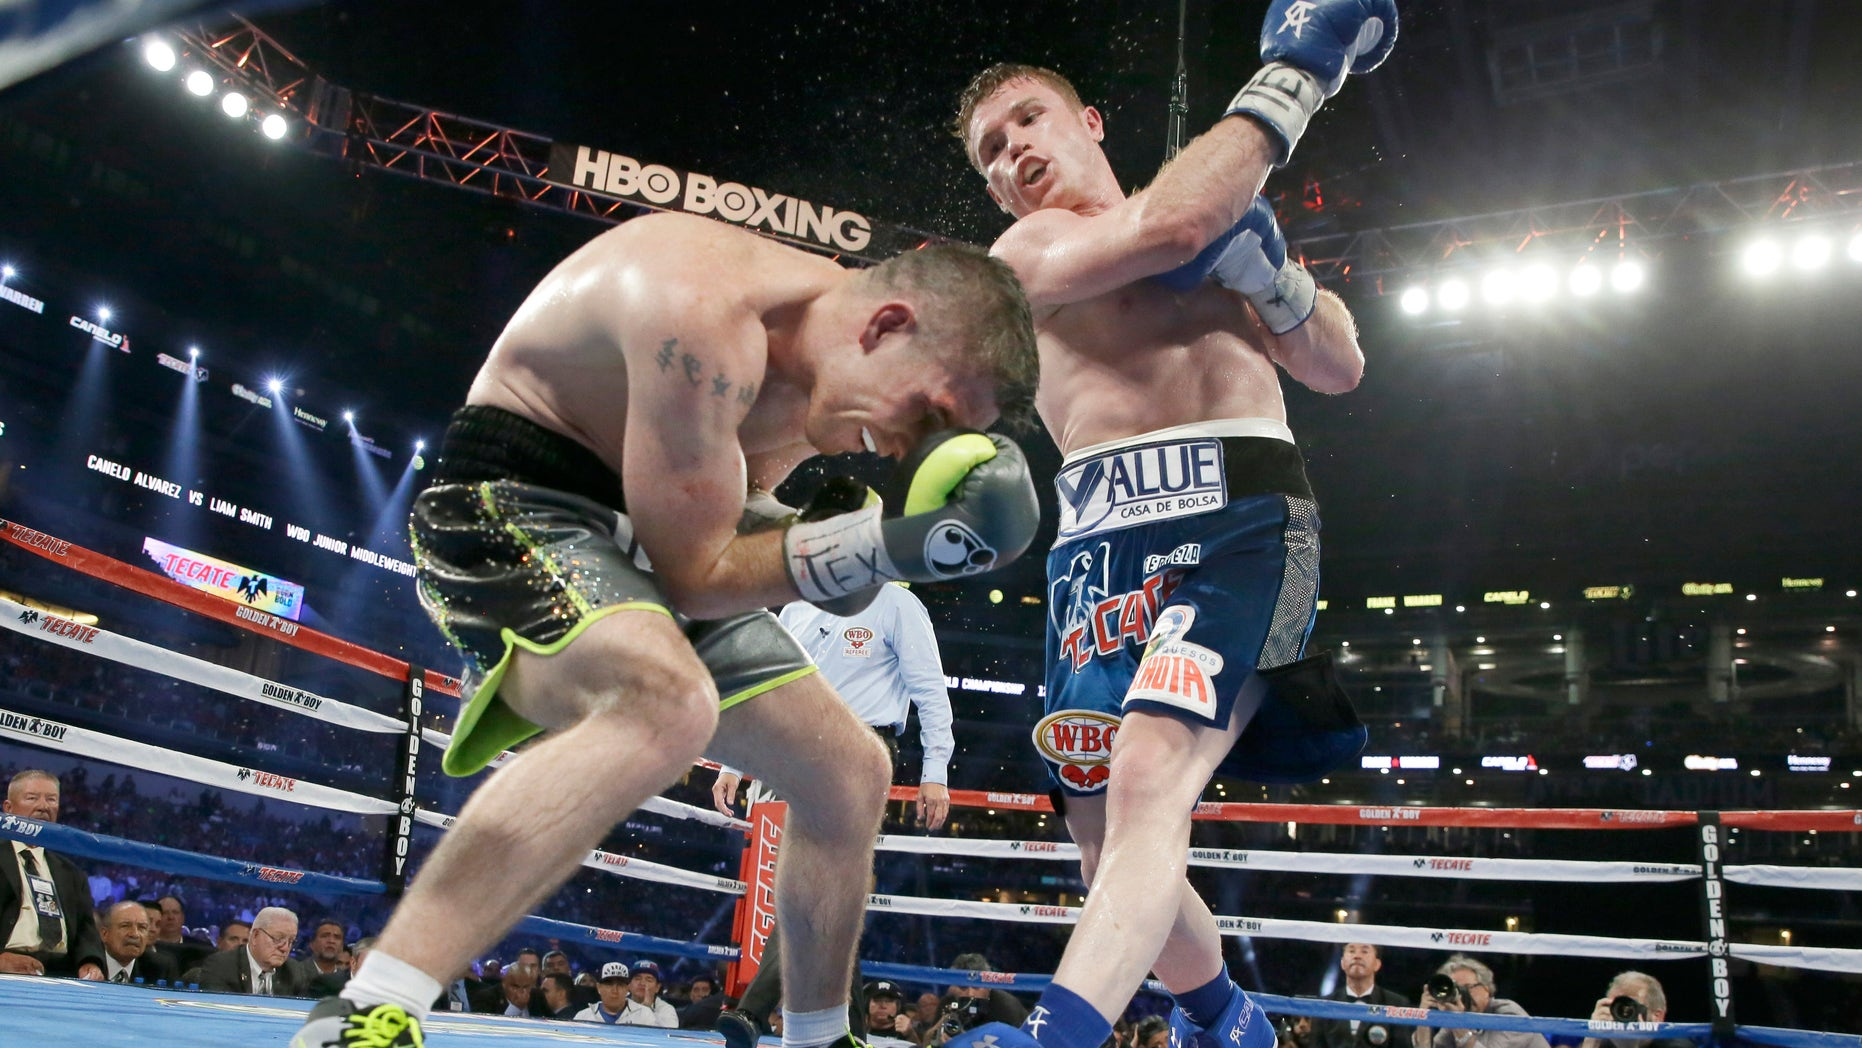 Canelo Alvarez punches Liam Smith during the eight round of the WBO Junior Middleweight championship boxing match at the stadium in Arlington, Texas, Saturday, Sept. 17, 2016. Alvarez won with a knock out in the ninth round. (AP Photo/LM Otero)